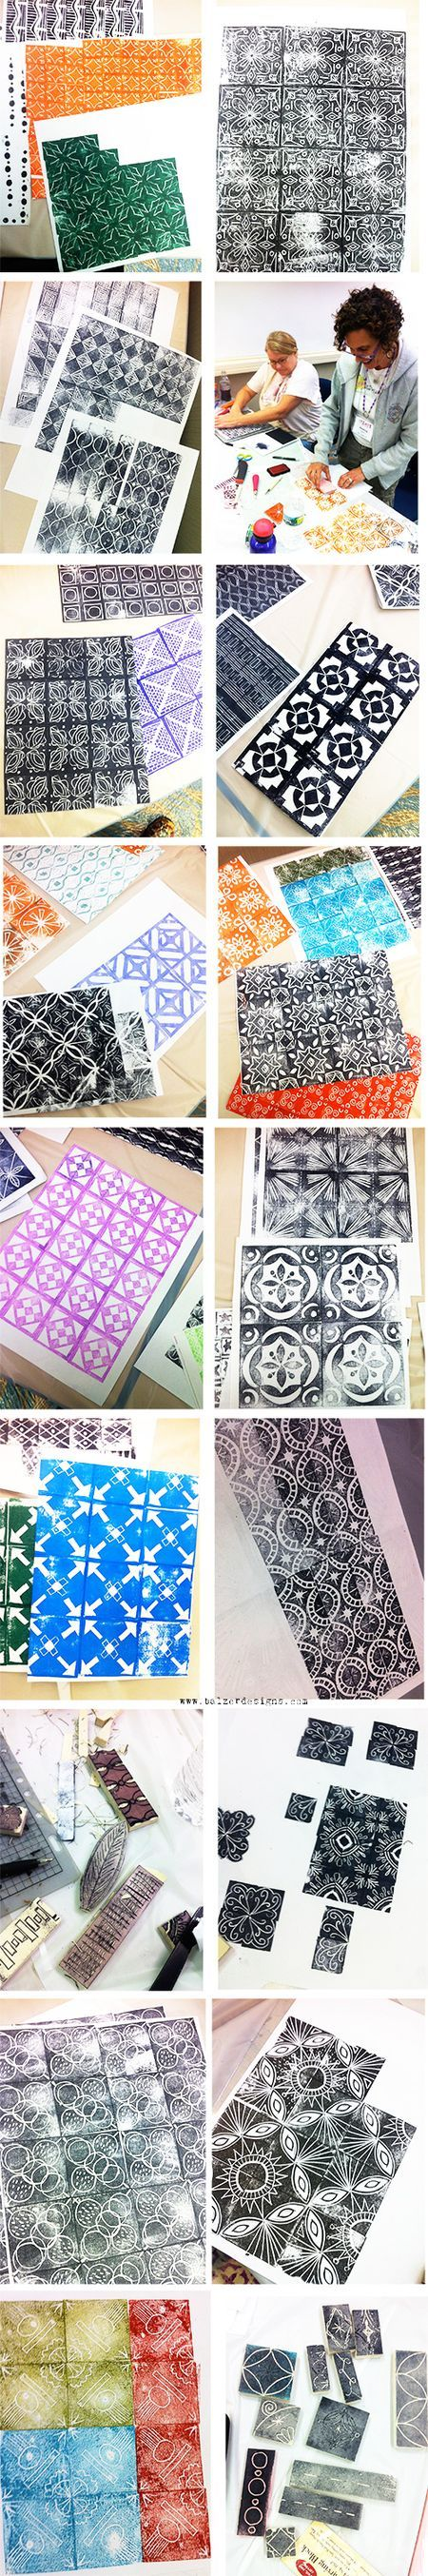 CREATE New Jersey: Carving Stamps for PatterningJennifer Ahlstrom